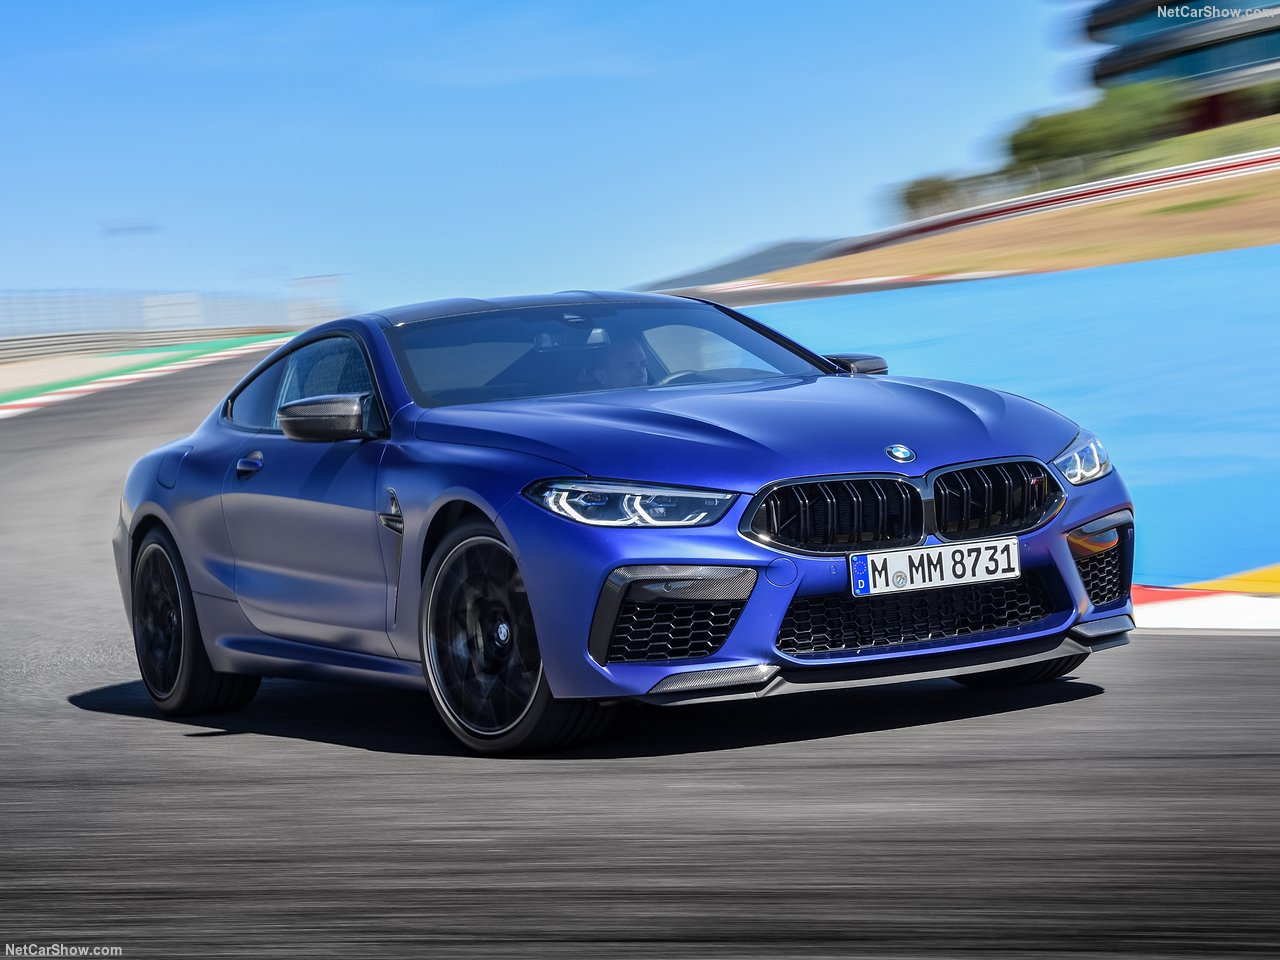 bmw-m8-competition-coupe-2020-1280-3d.jpg